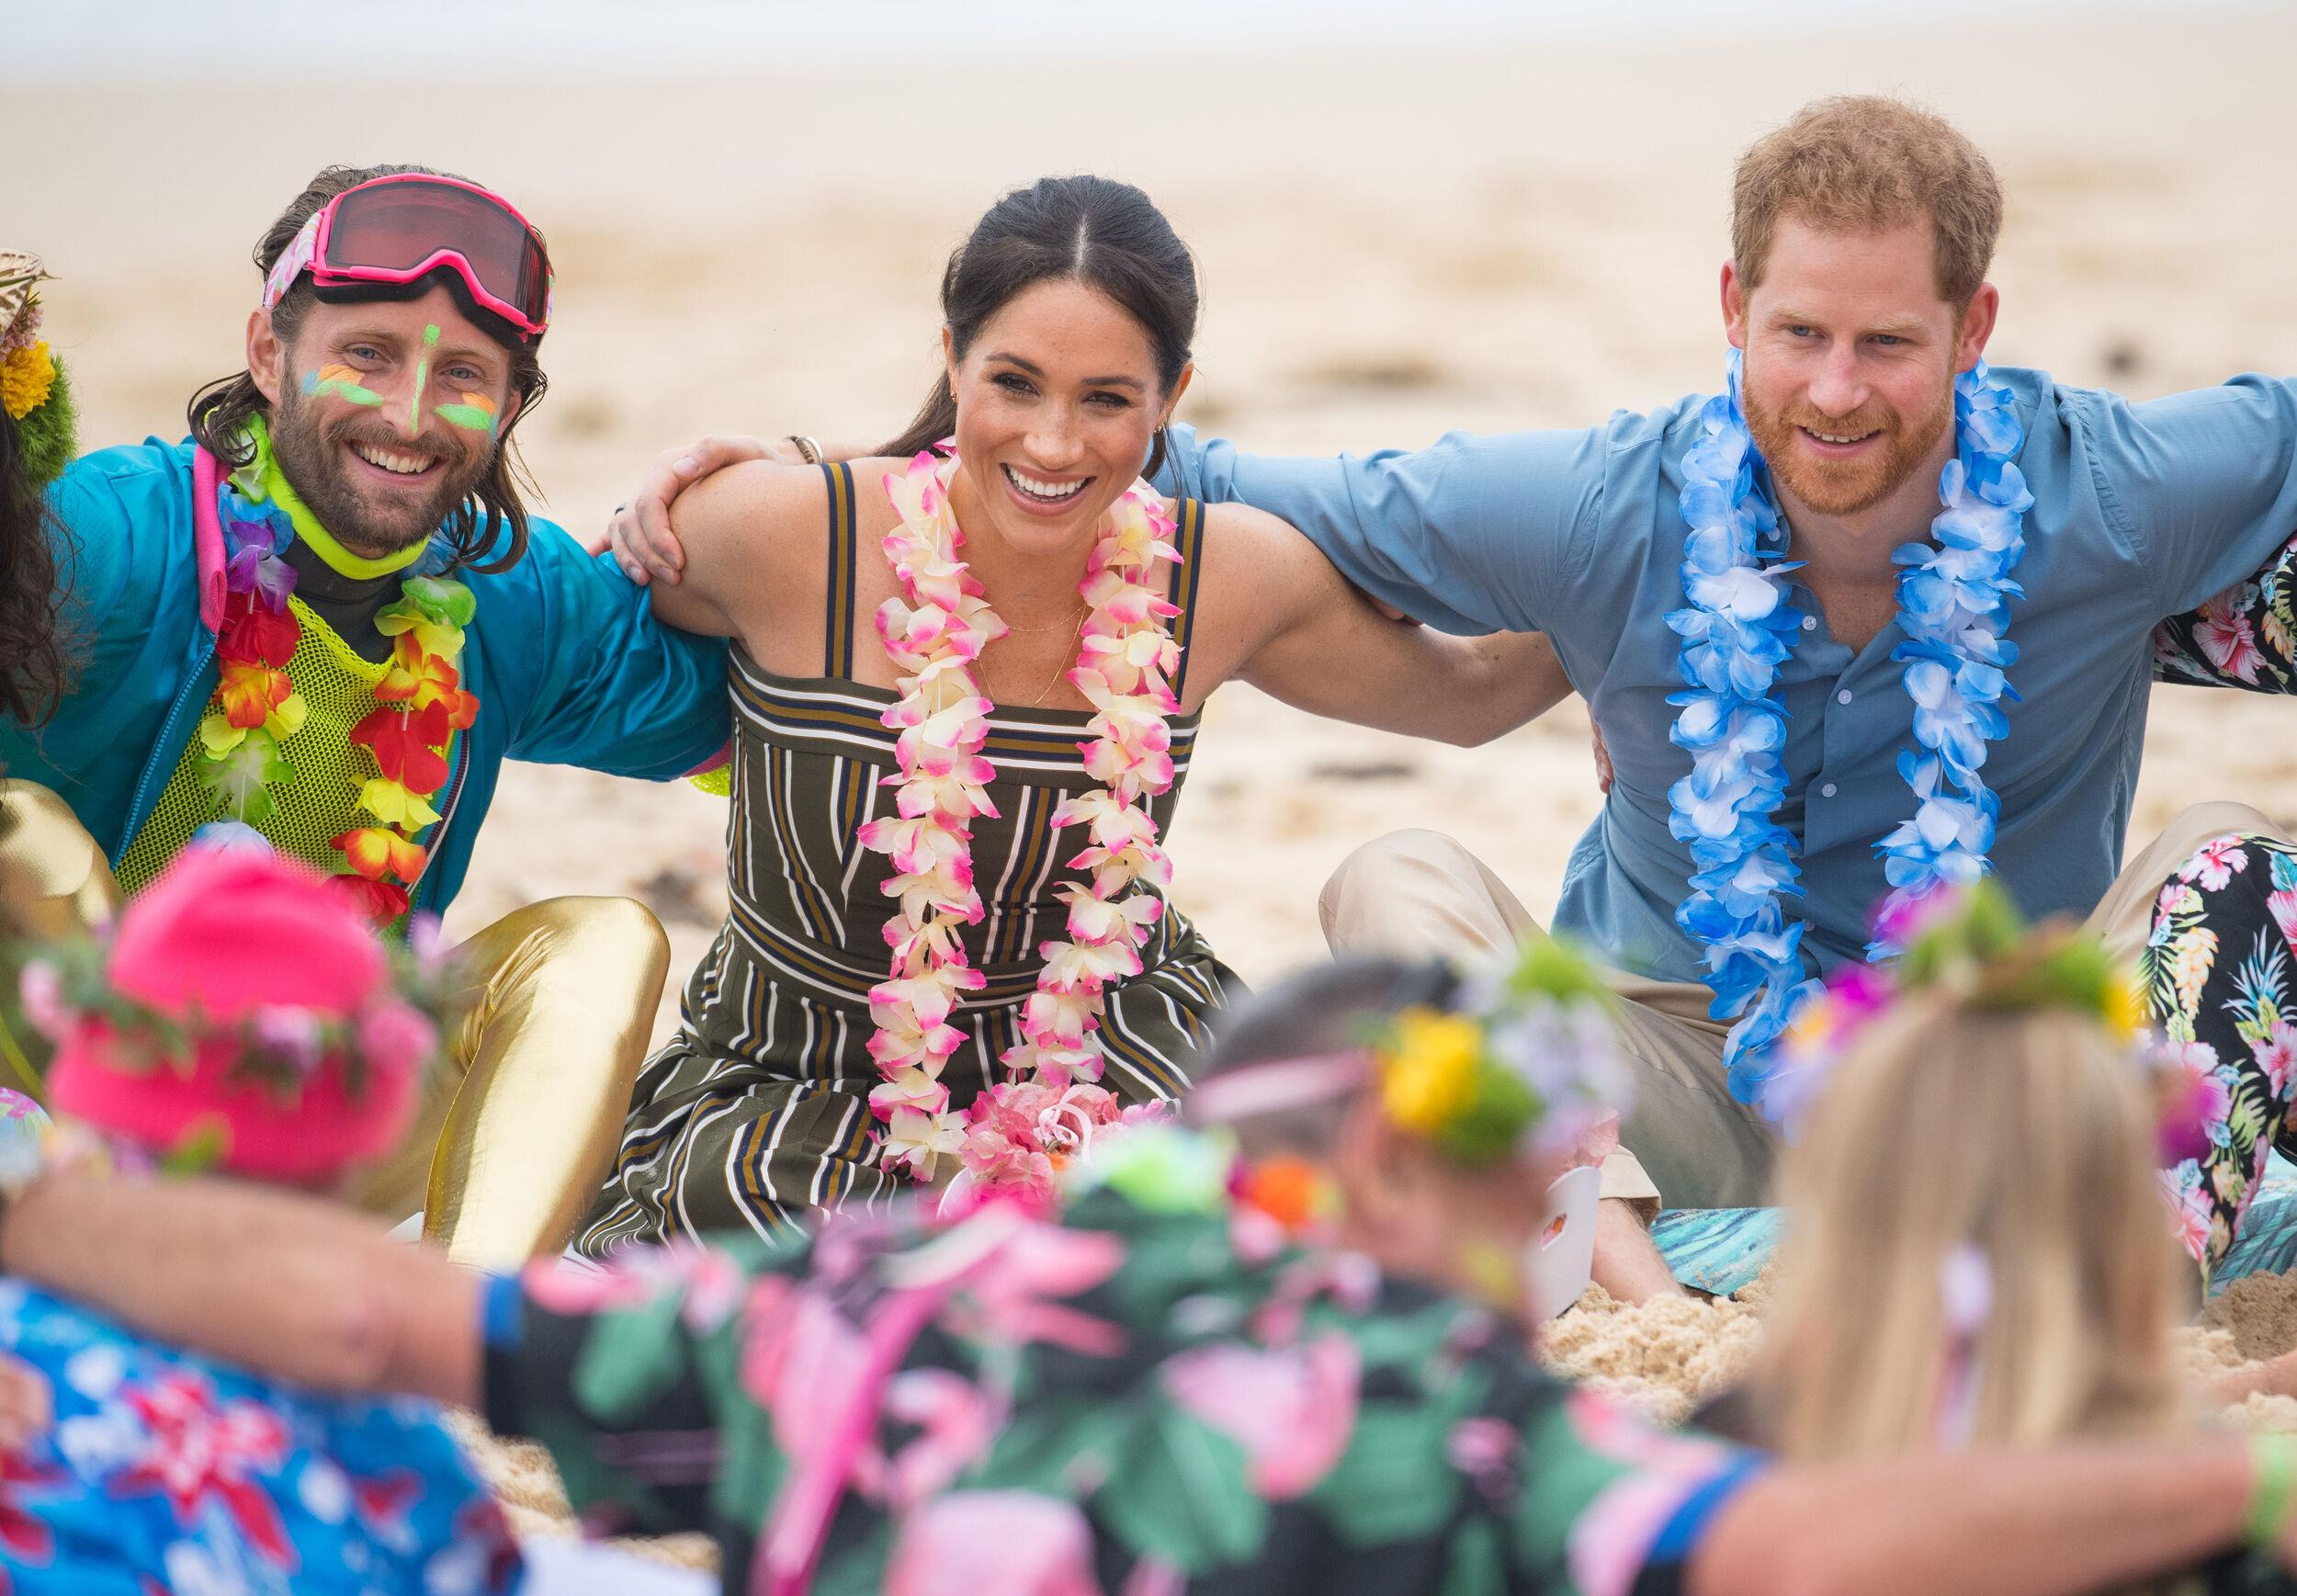 The Duke and Duchess of Sussex meet members of surfing community group One Wave during a visit to South Bondi Beach in Sydney, on the day of the royal couple's visit to Australia.